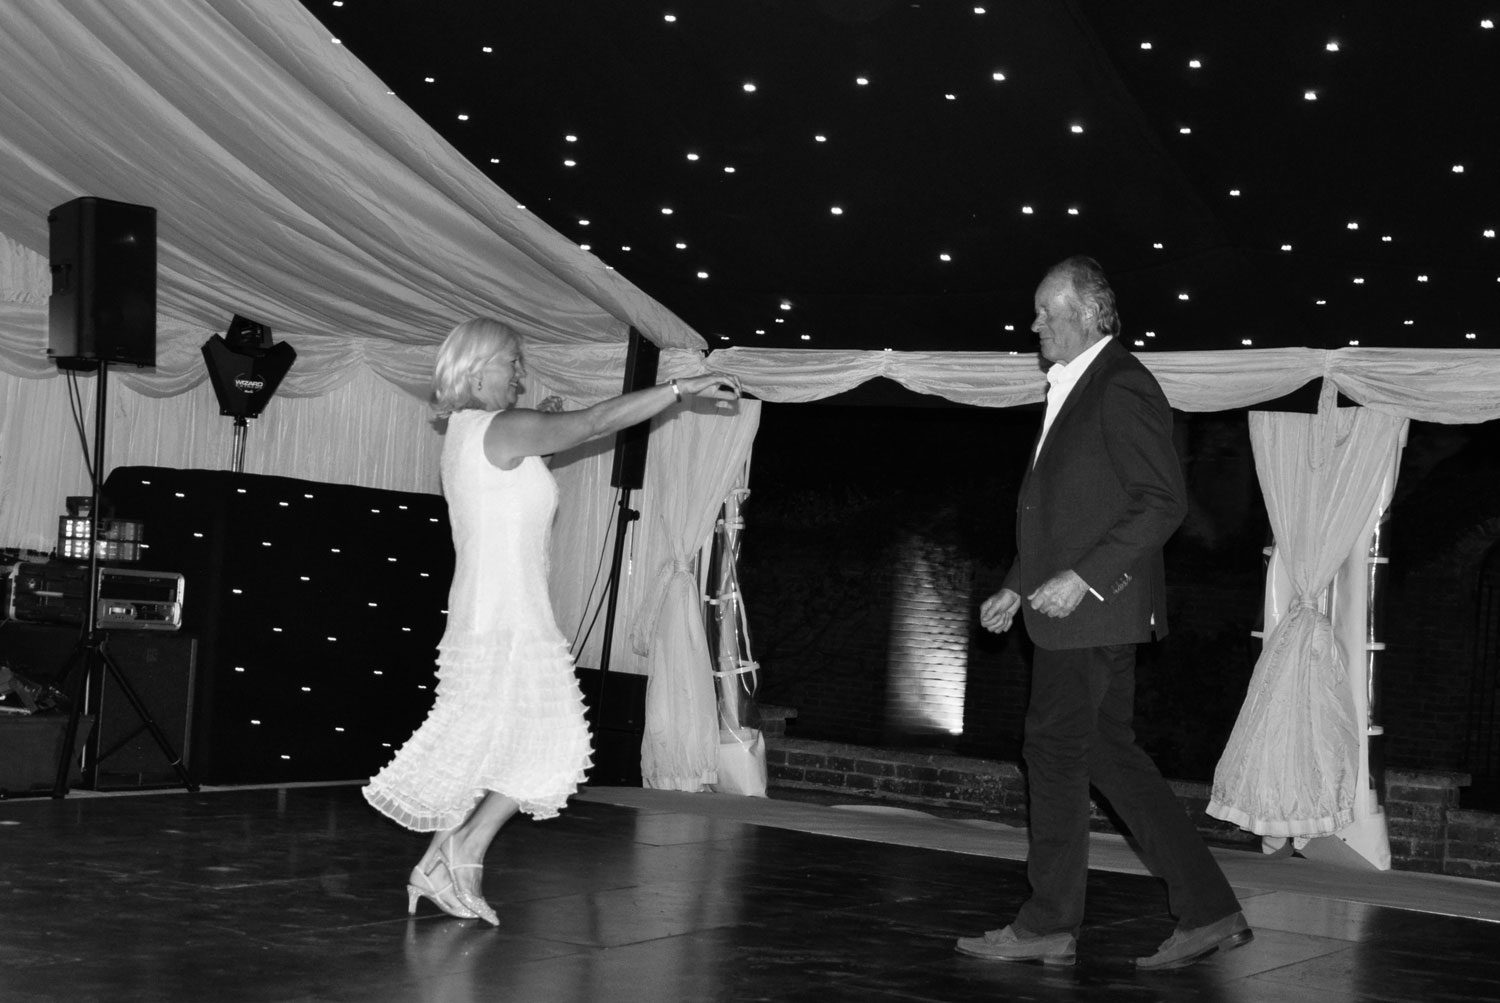 Bride and Groom dancing (black & white photo)